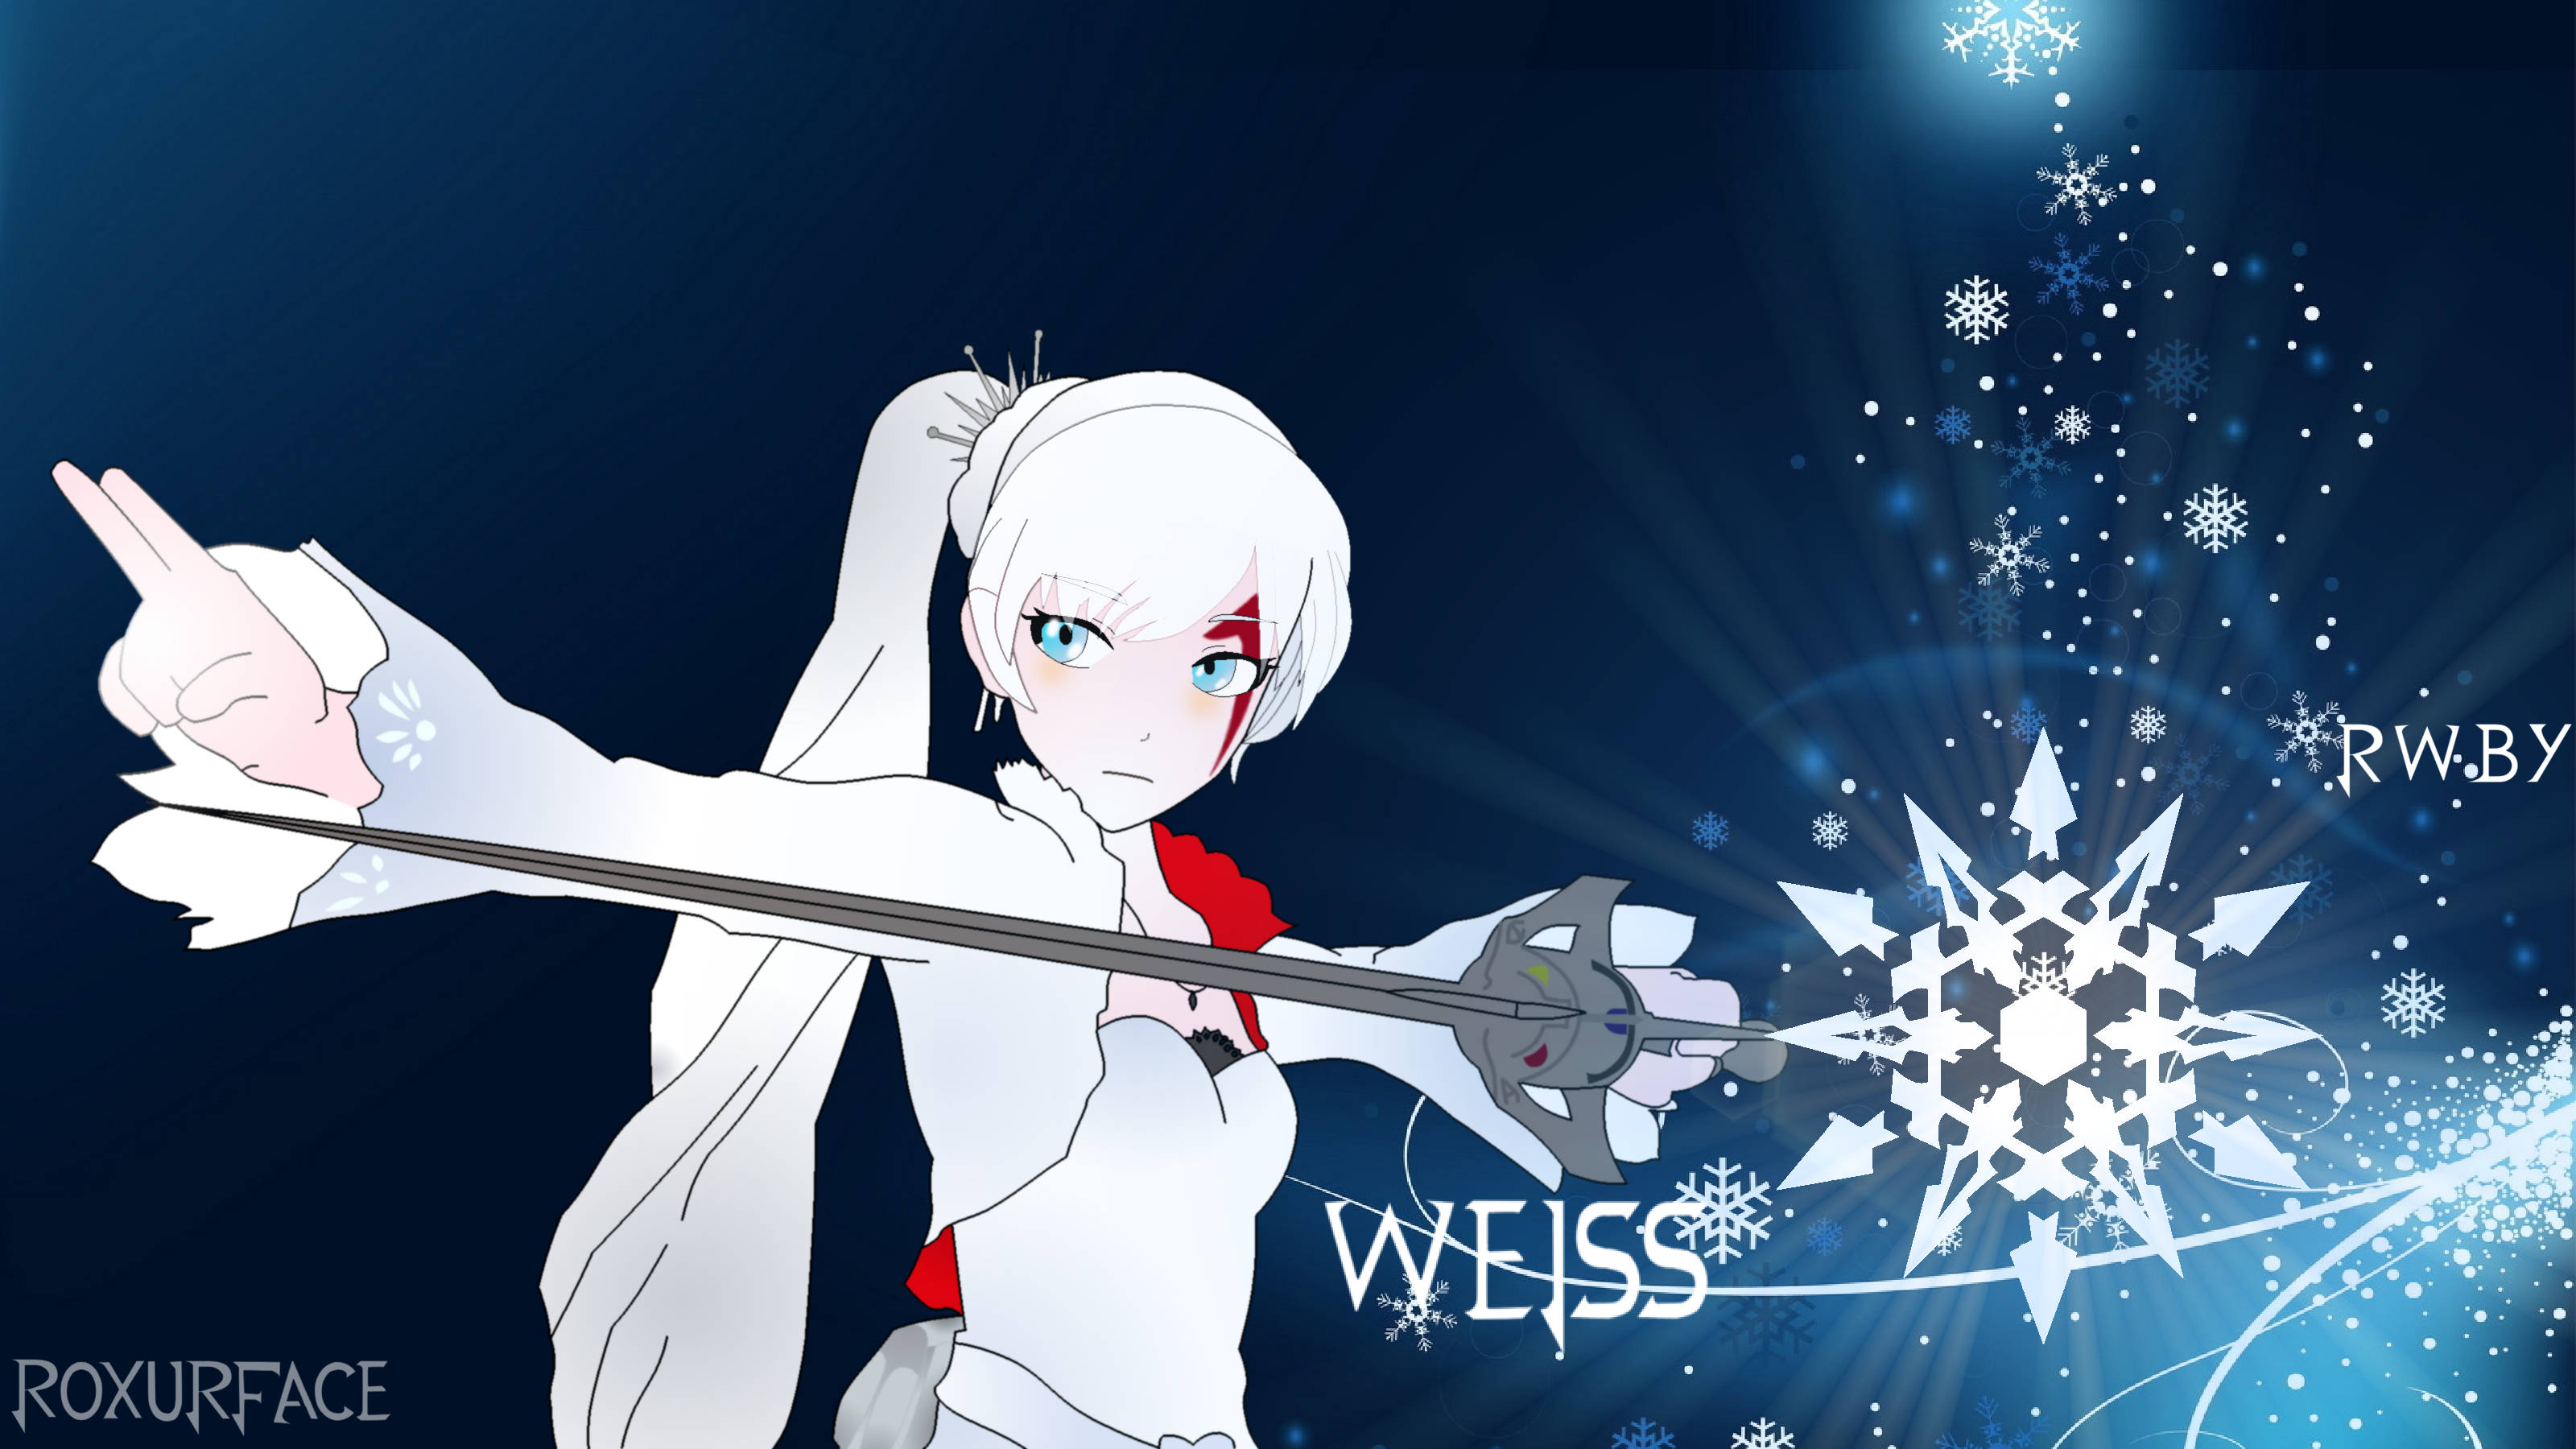 rwby weiss wallpaper - photo #1